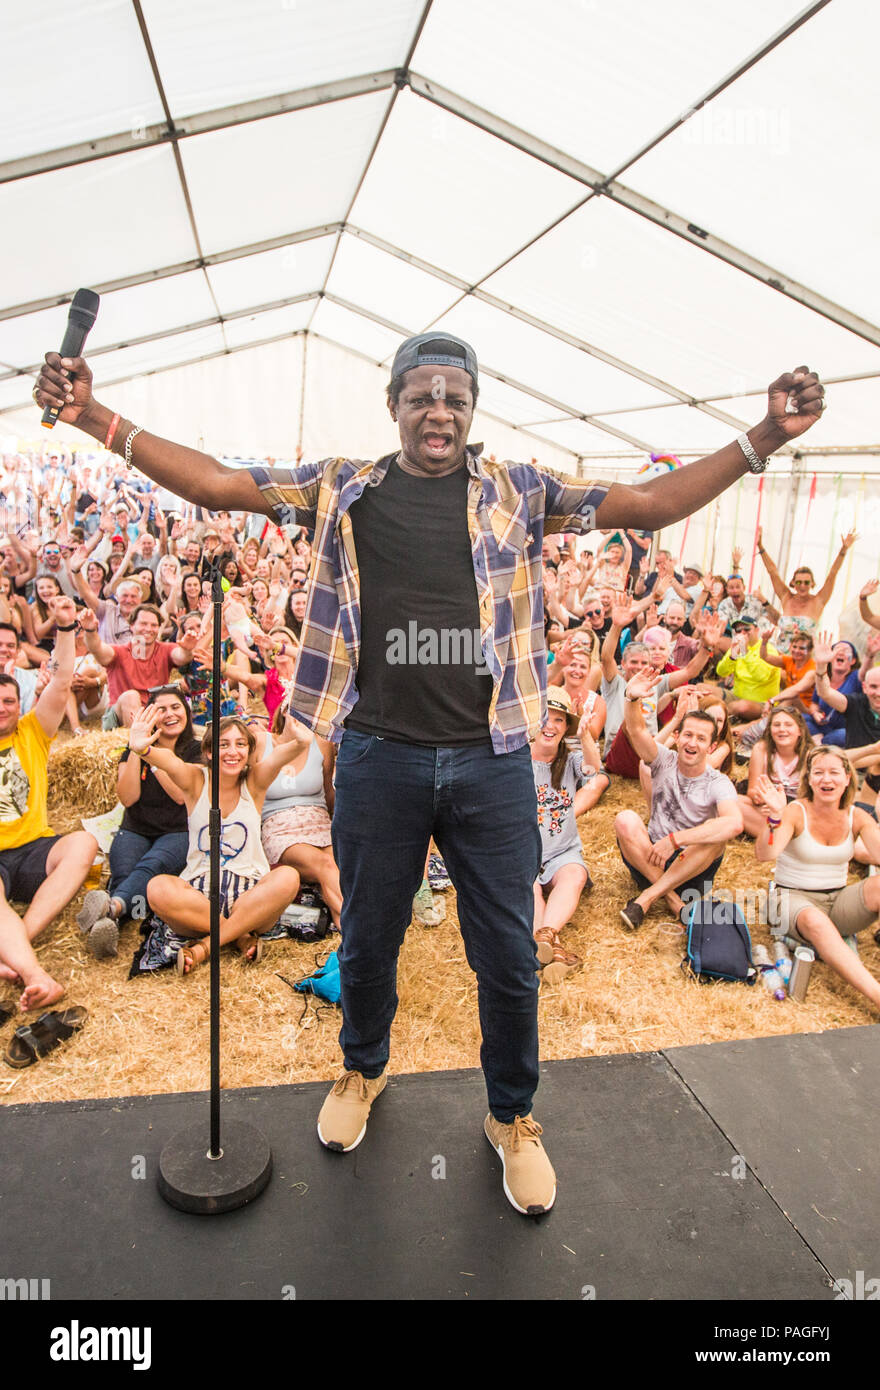 Kent, UK. 21st July, 2018. 21st July 2018  - Vicars Picnic - Music Festival Day 2 Performance  in Comedy tent - artist Stephen K Amos  Credit Glamourstock Credit: glamourstock/Alamy Live News Stock Photo